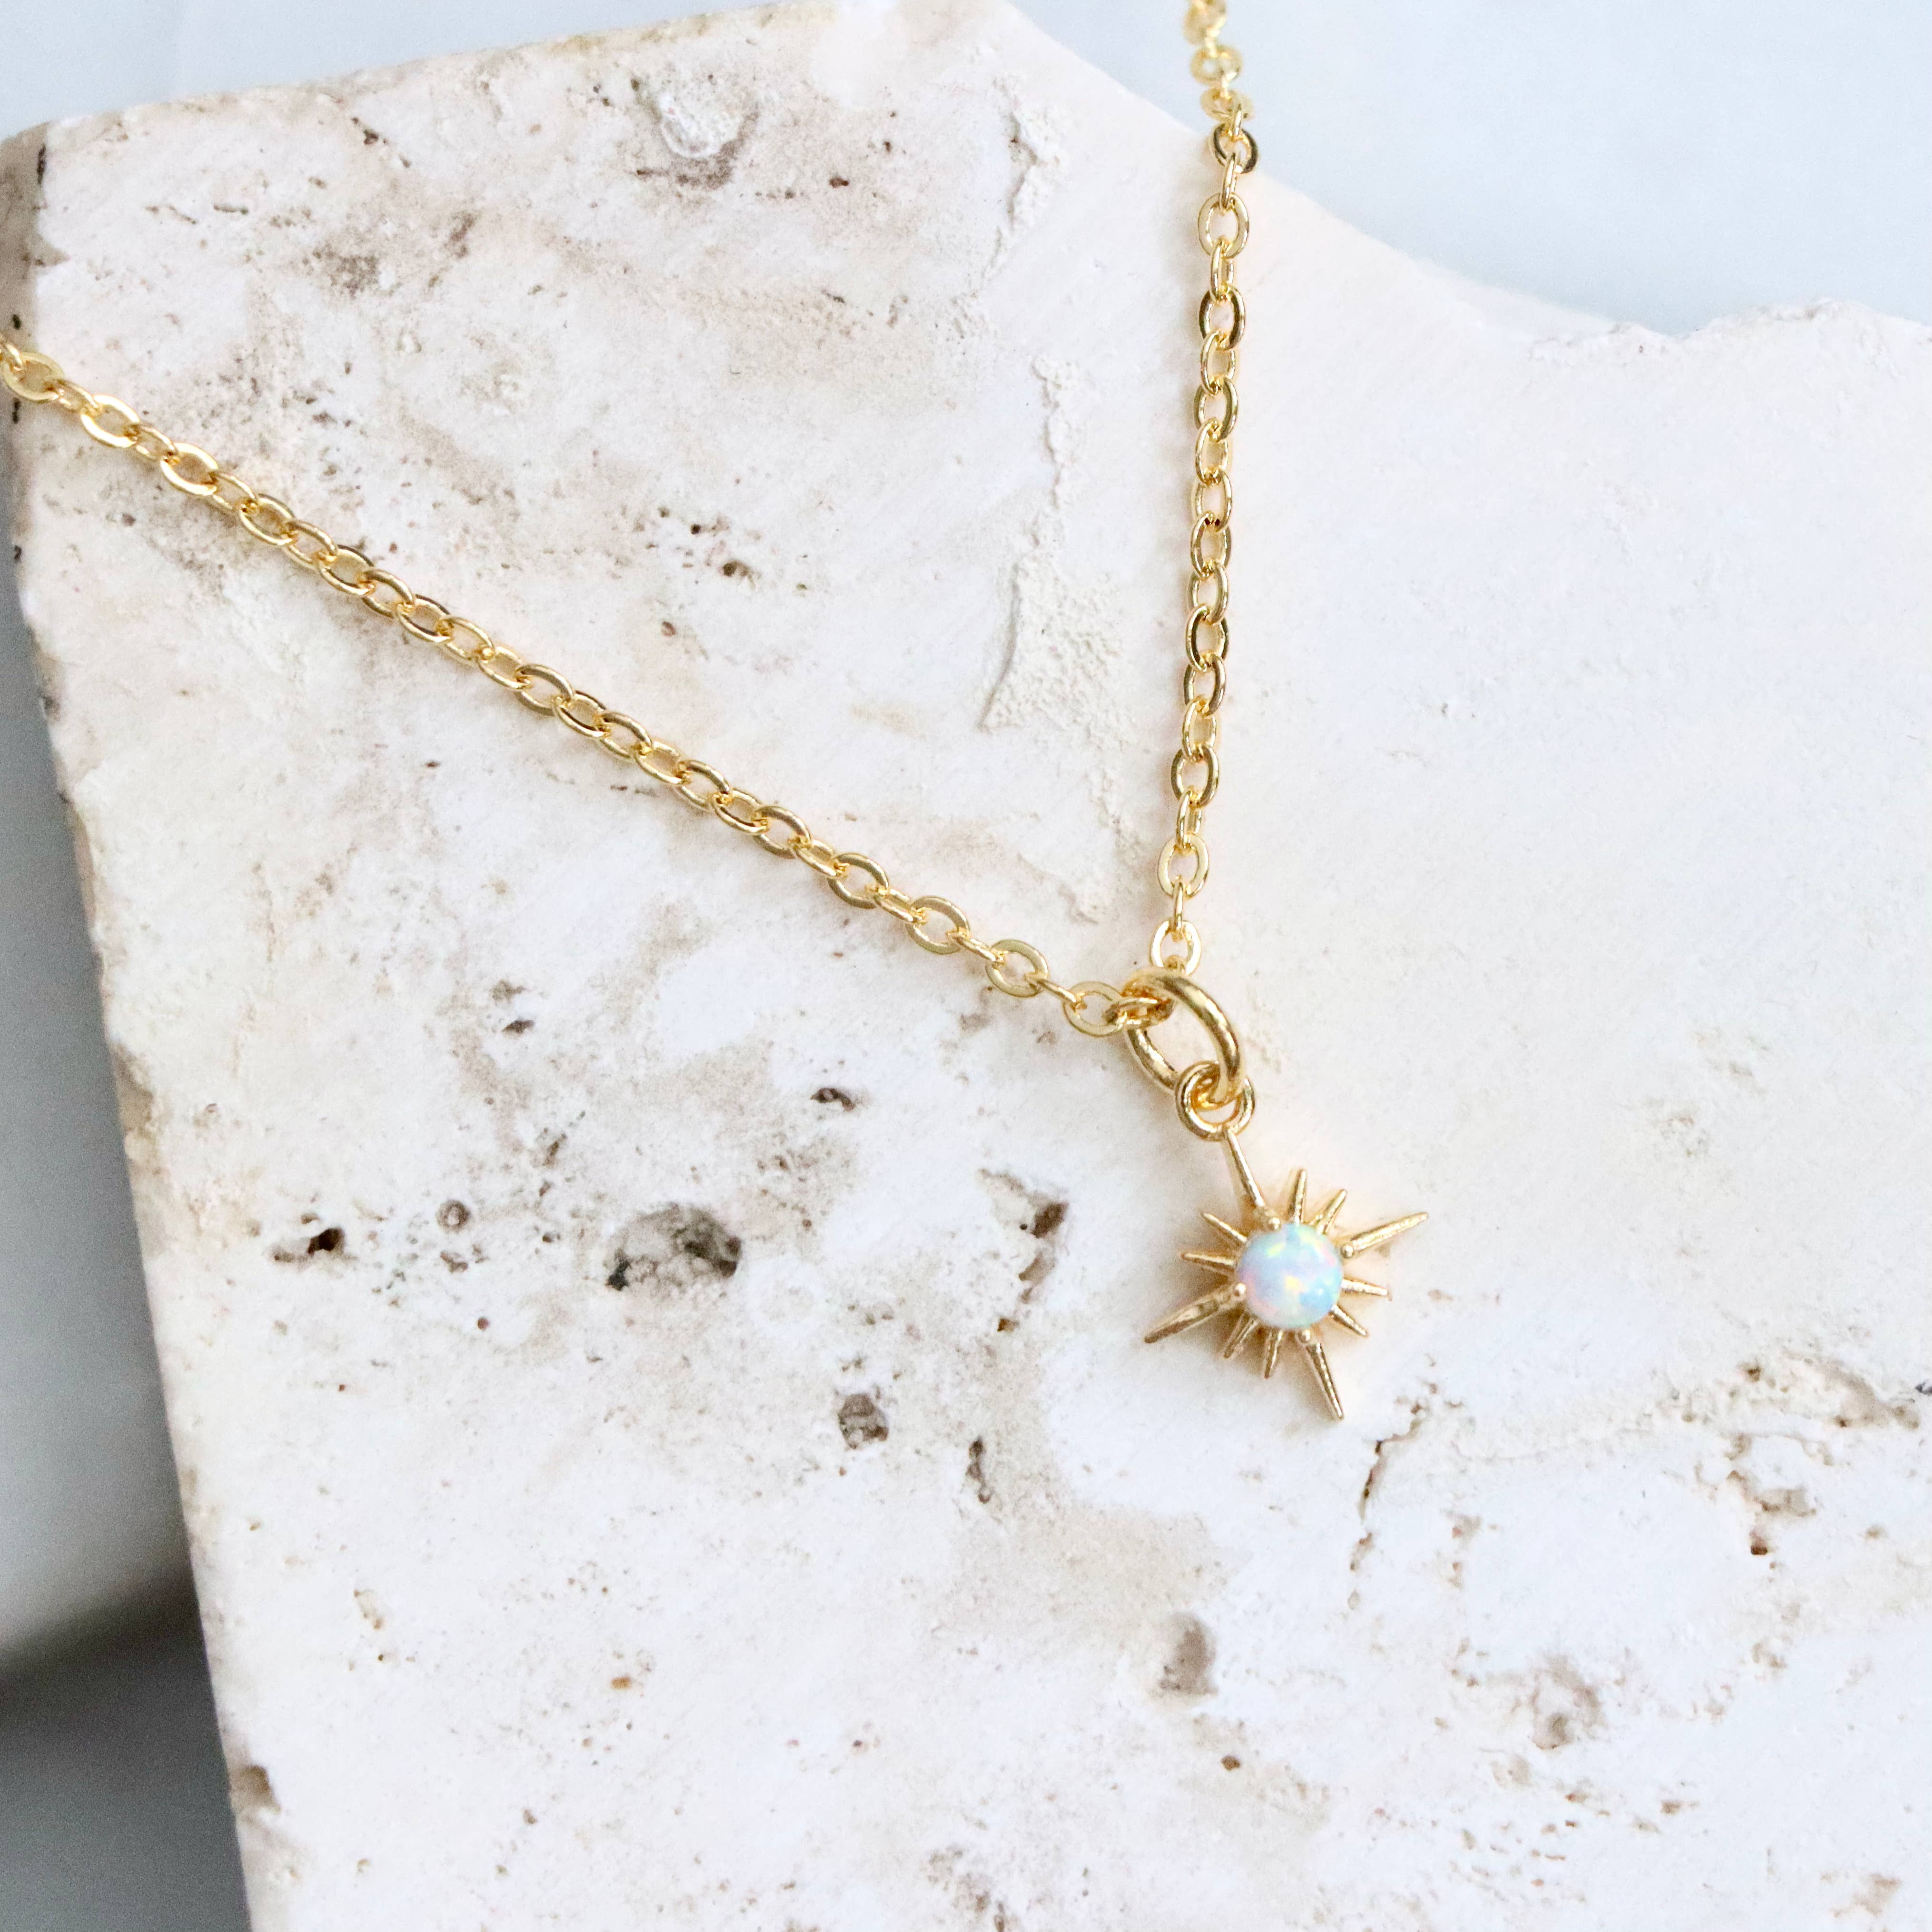 Sweet Selenite Necklace with Amethyst Drop in Gold-Filled Chain with Gold-Filled Clasp